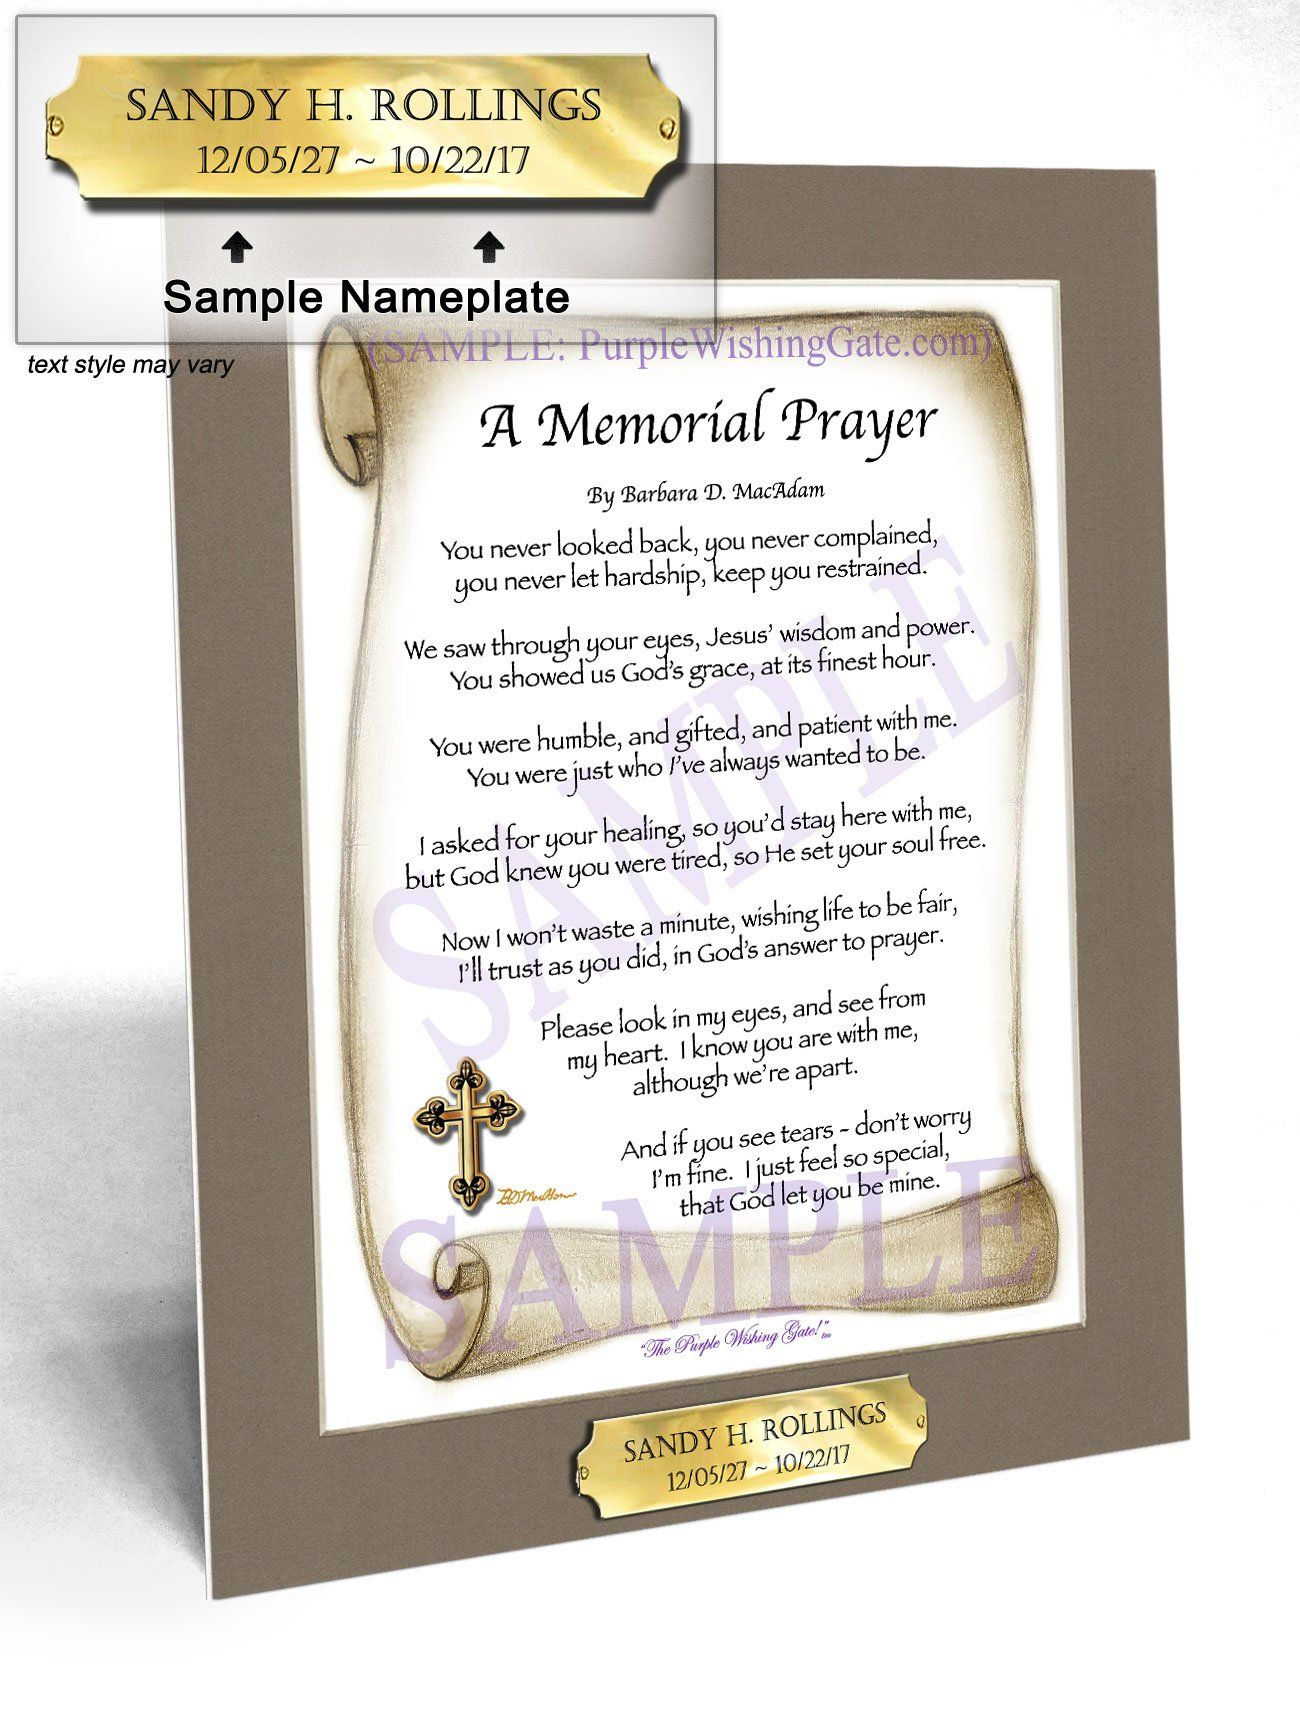 A memorial prayer frame personalize gift purplewishinggate